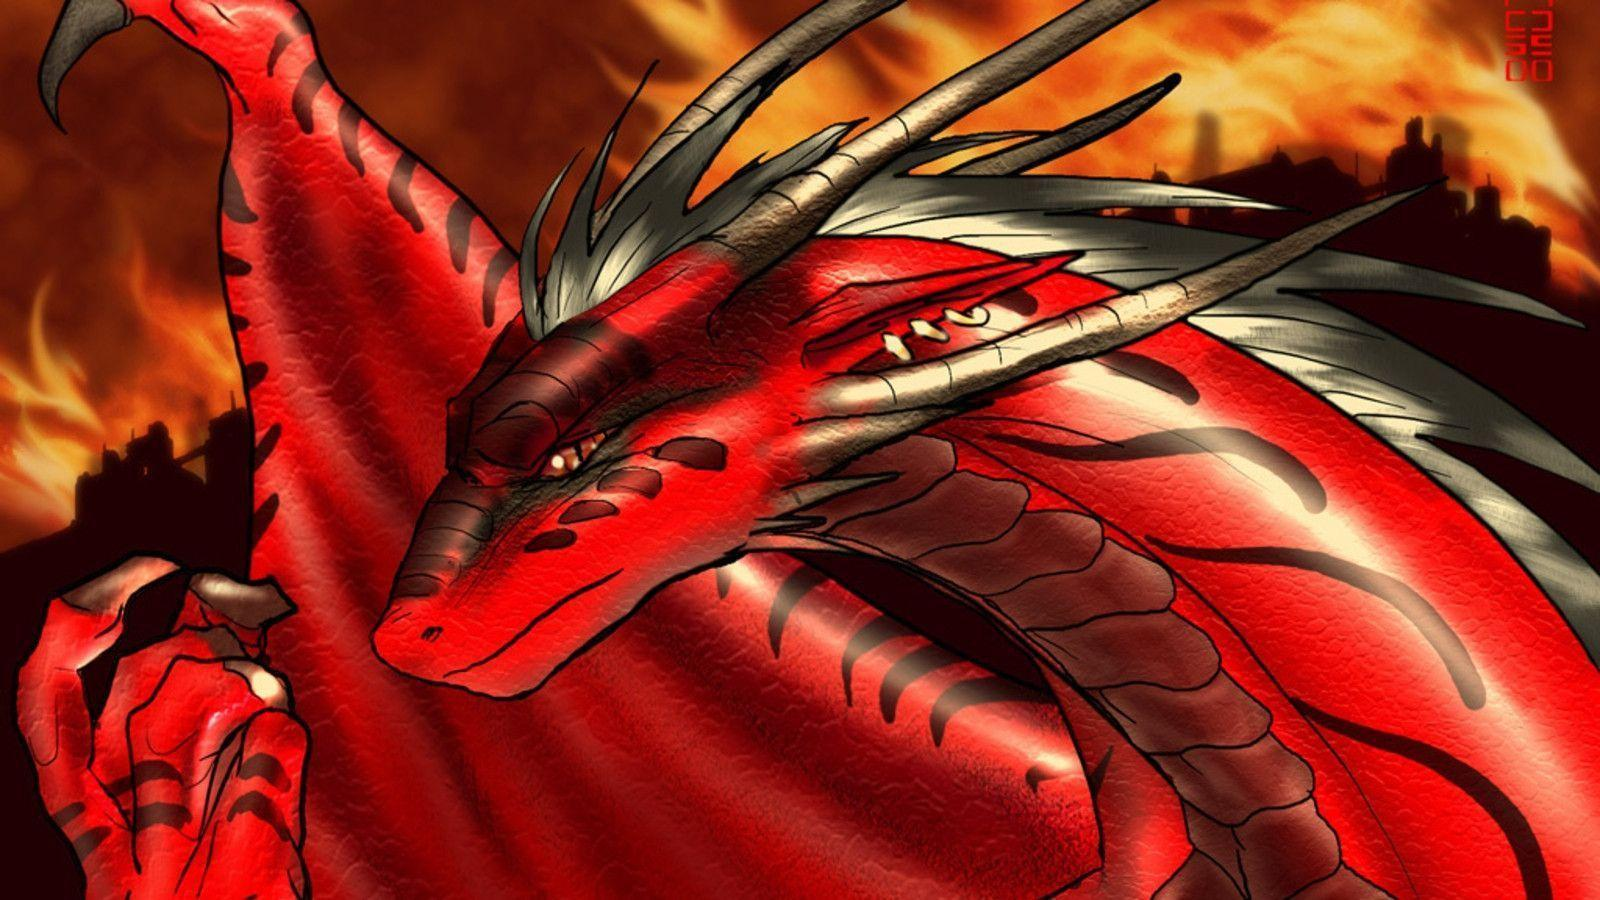 red dragons wallpaper - photo #19